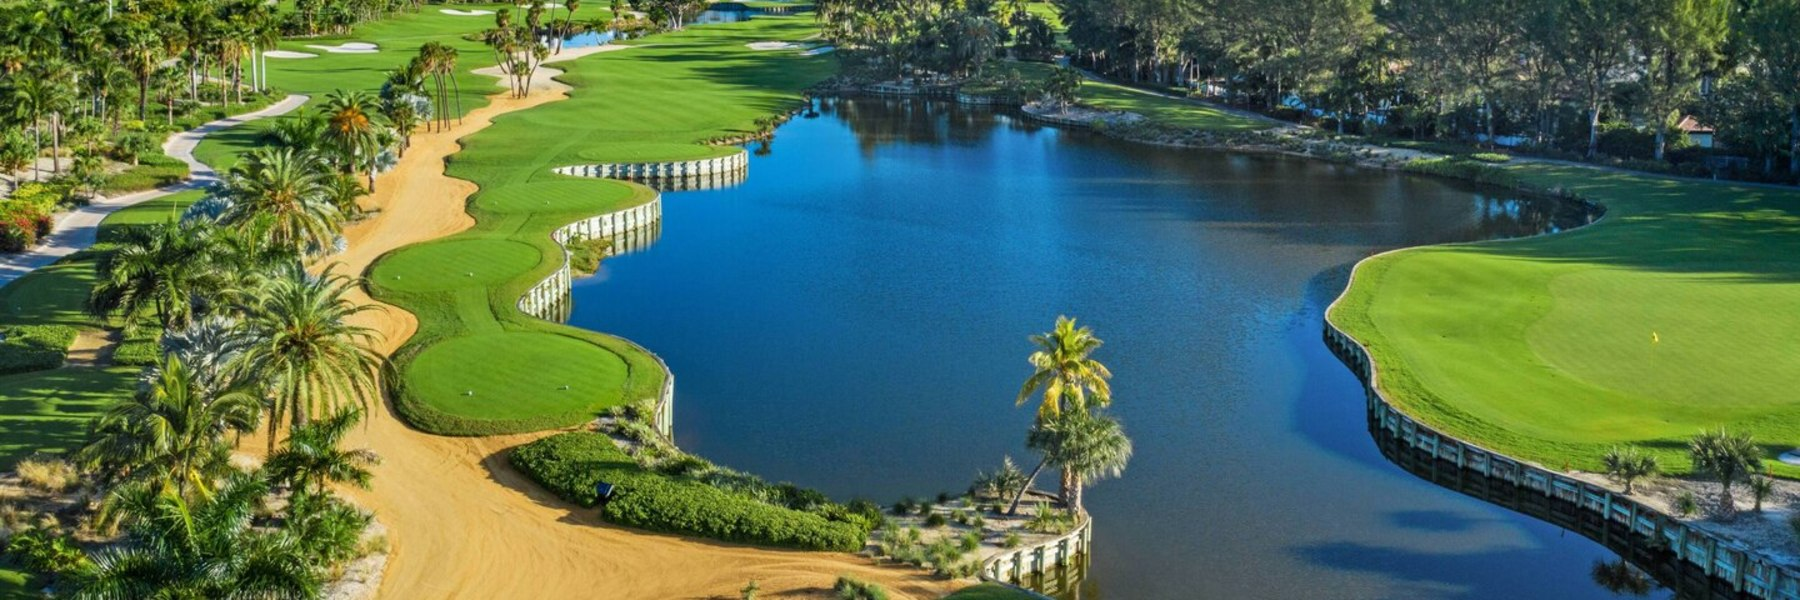 Golf Vacation Package - Turnberry Isle Resort Miami Stay & Play $371 per day!